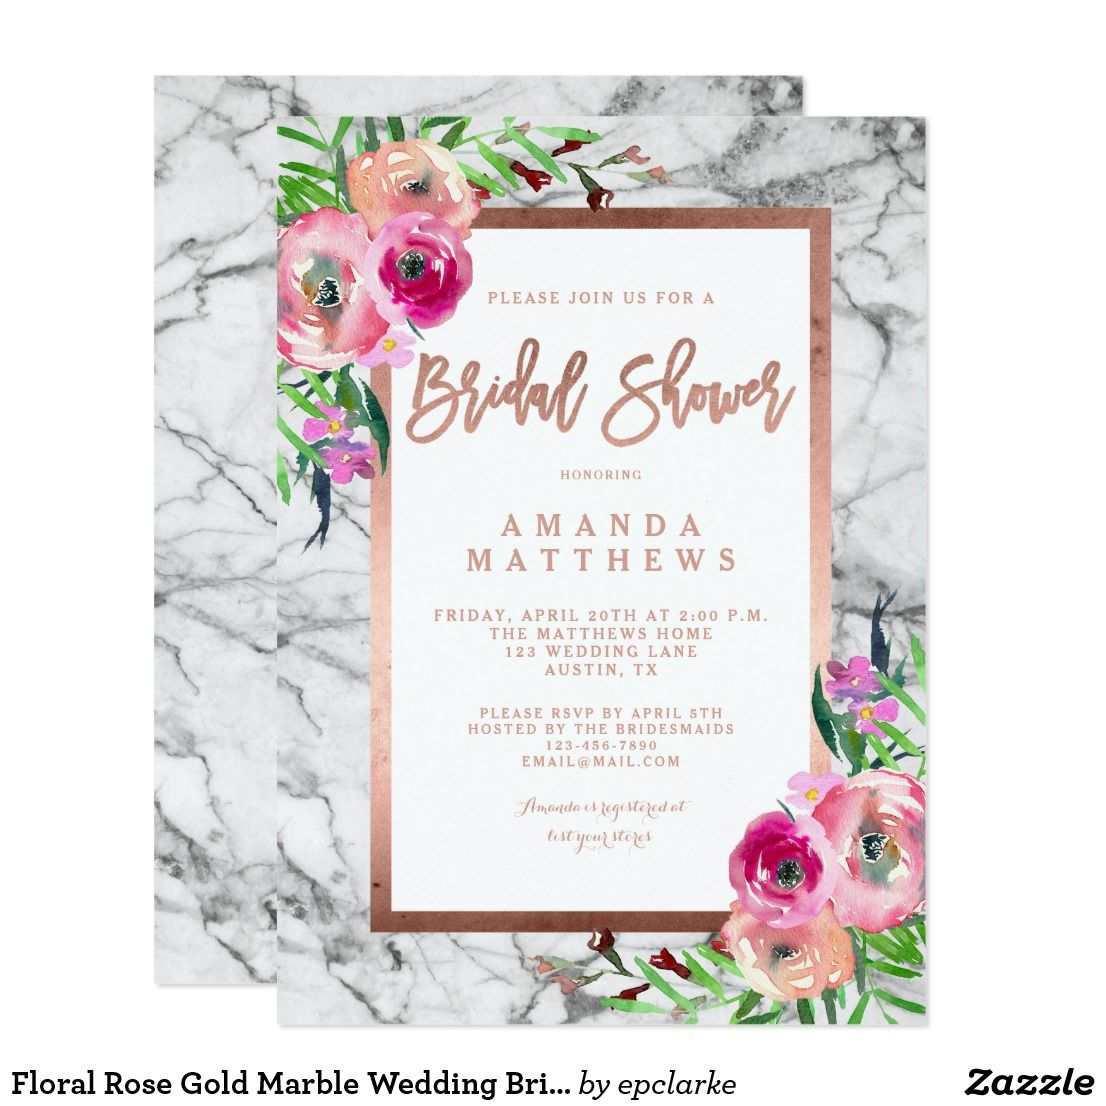 Floral Rose Gold Marble Wedding Bridal Shower Card Beautiful